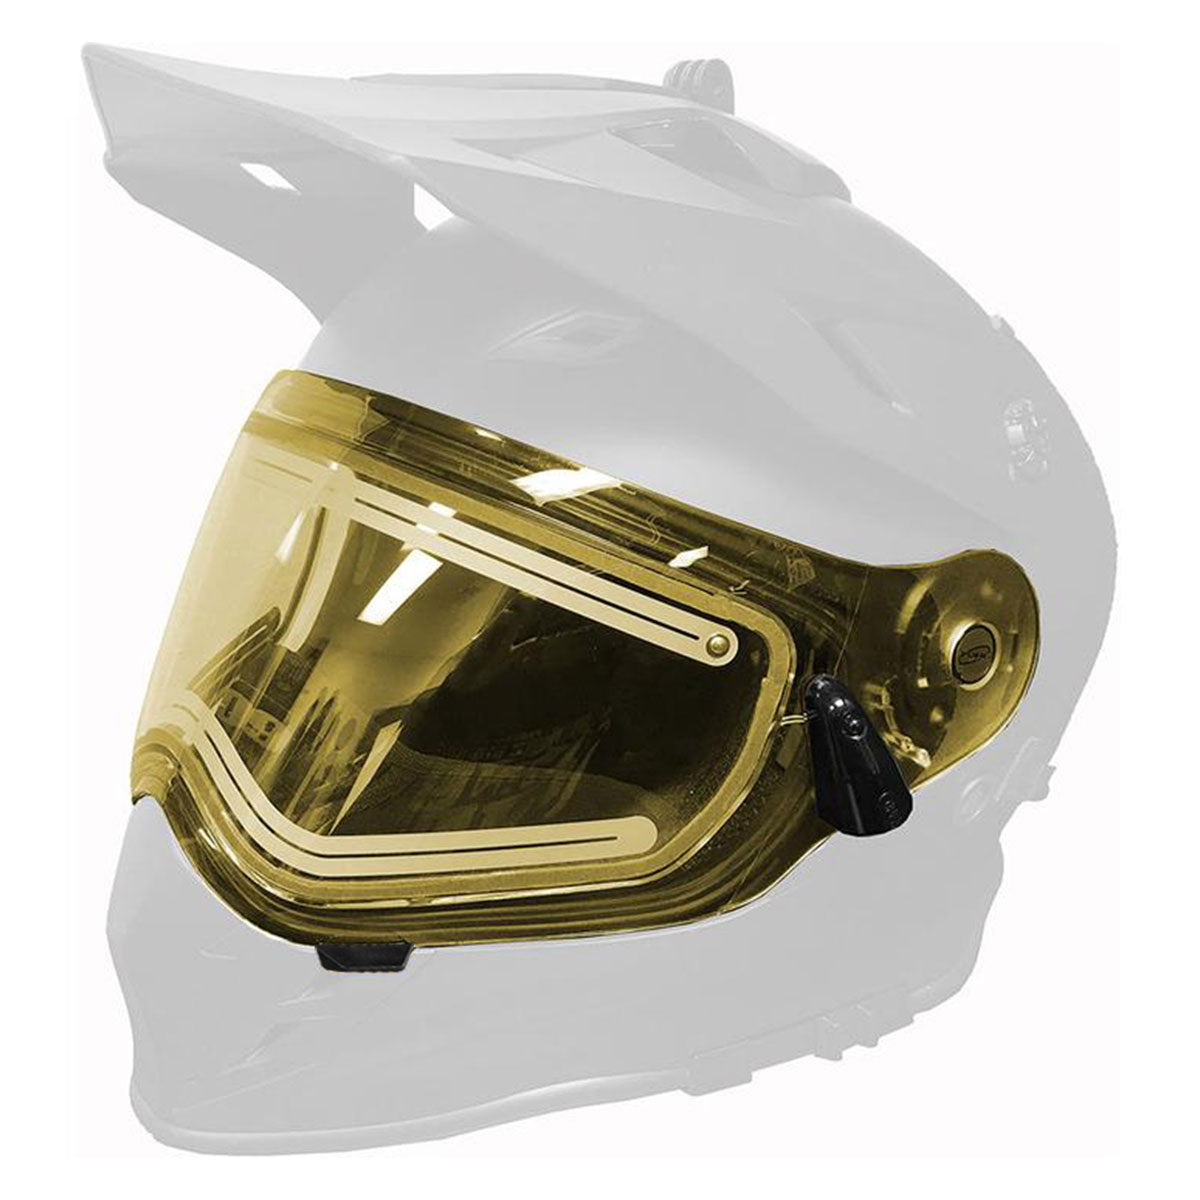 Ignite Shield for Delta R3L Ignite Helmet